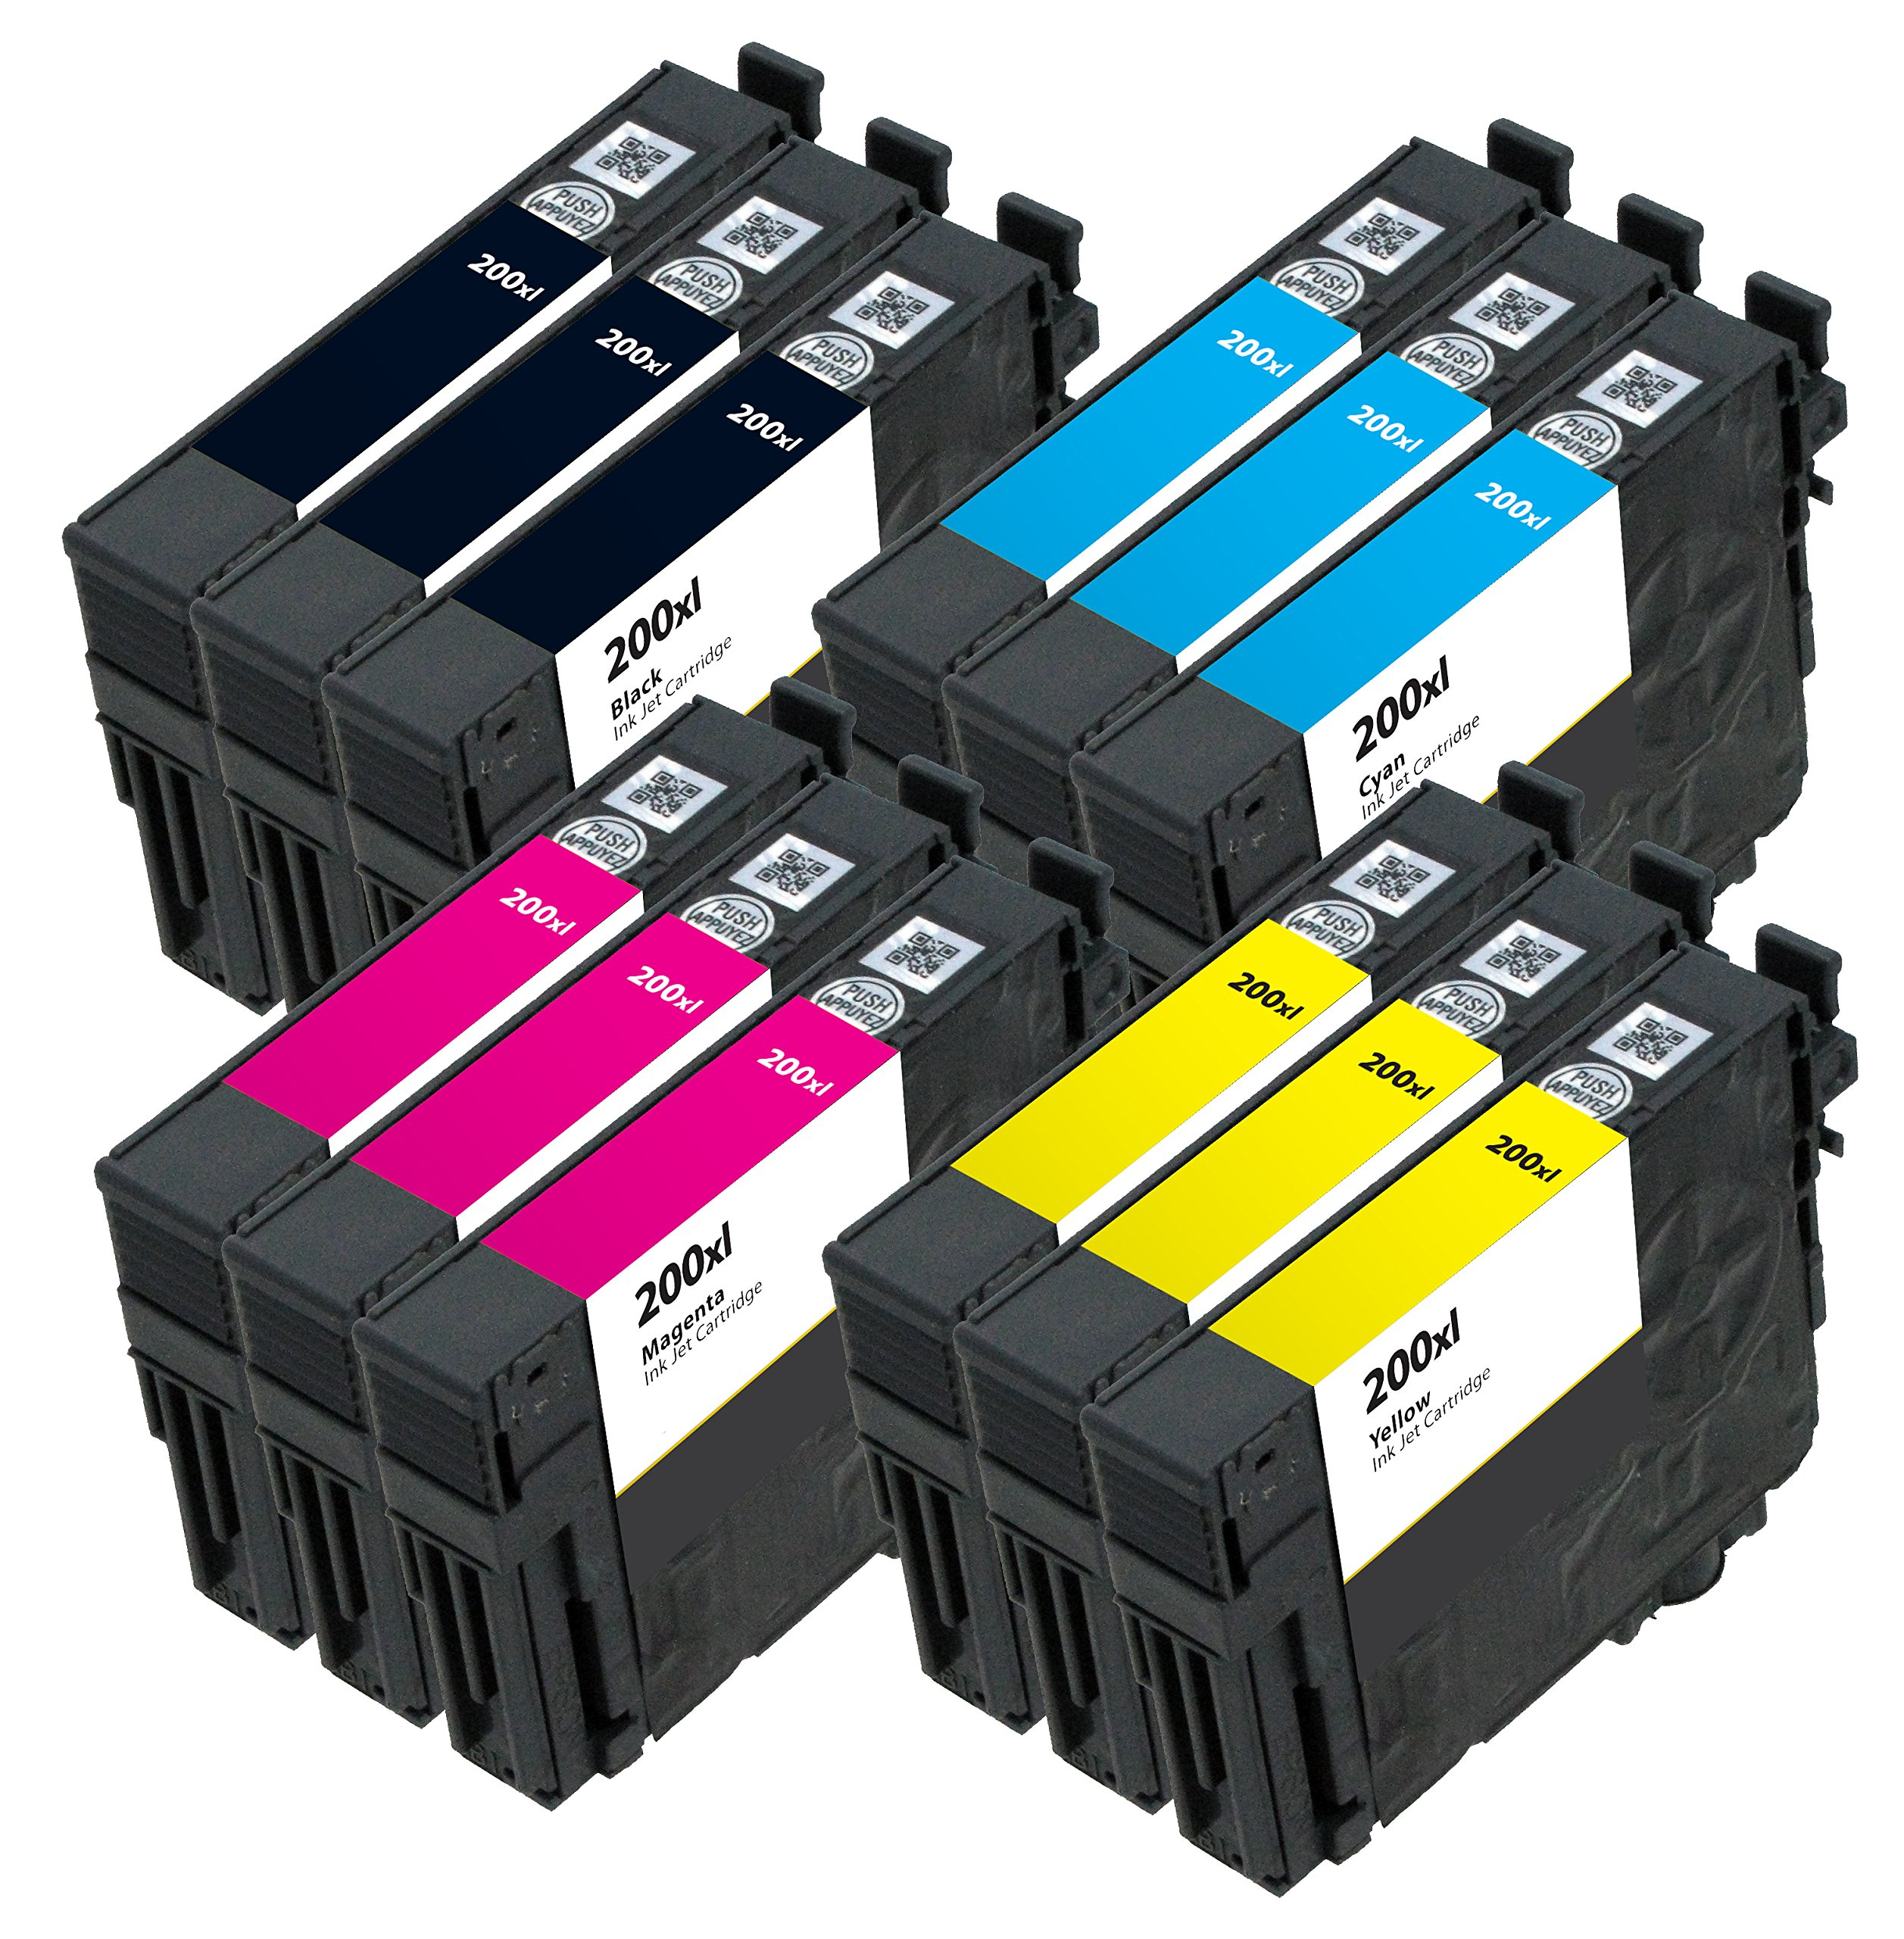 OCP Remanufactured OCP-200XL Ink Cartridge Replacement for WorkForce WF-2540 WF-2530 Expression XP-200 XP-300 XP-400 Printers (3 Black 3 Cyan 3 Magenta 3 Yellow)